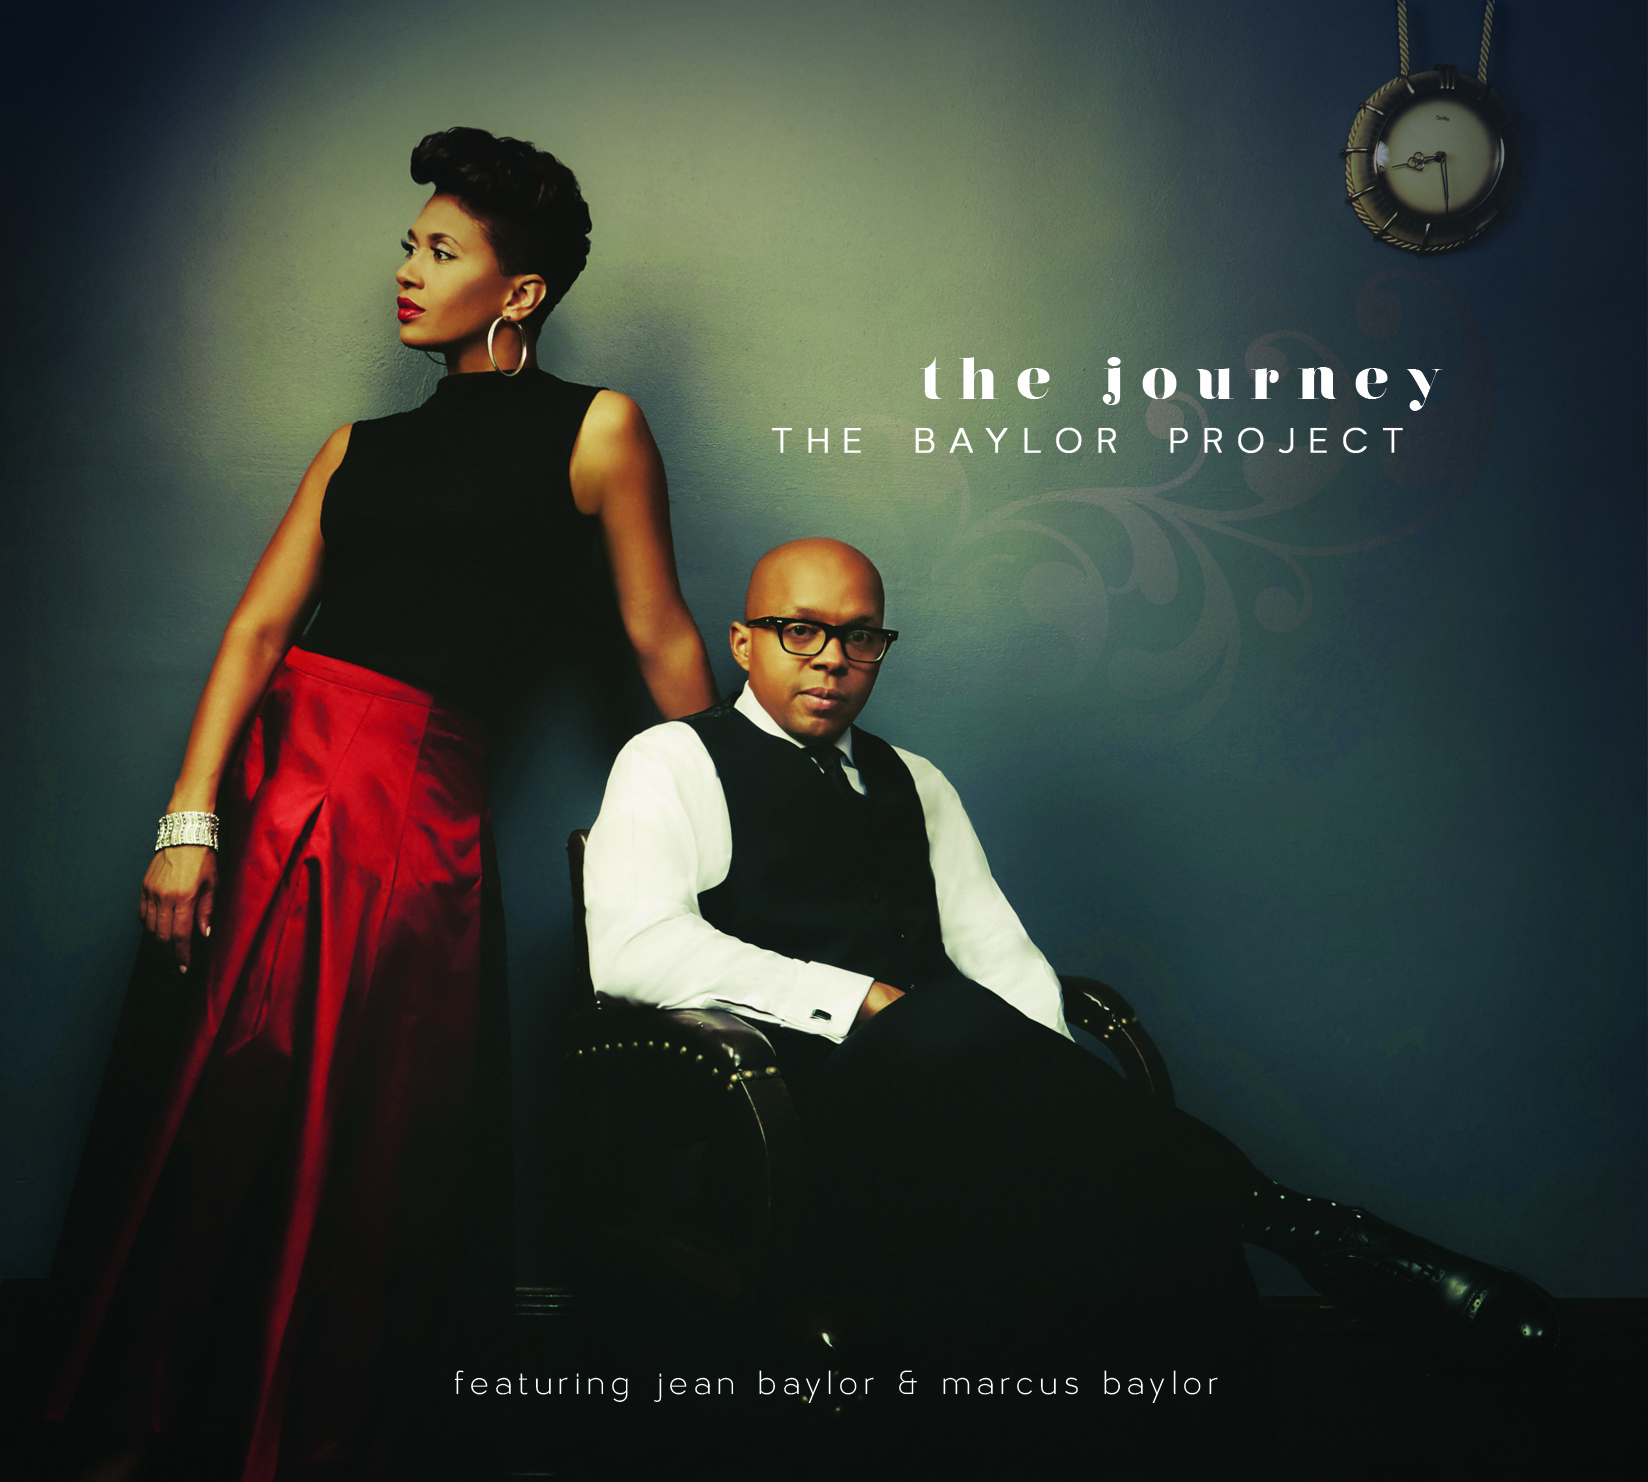 The Baylor Project's 'The Journey' Receives a 4-Star Review from All About Jazz